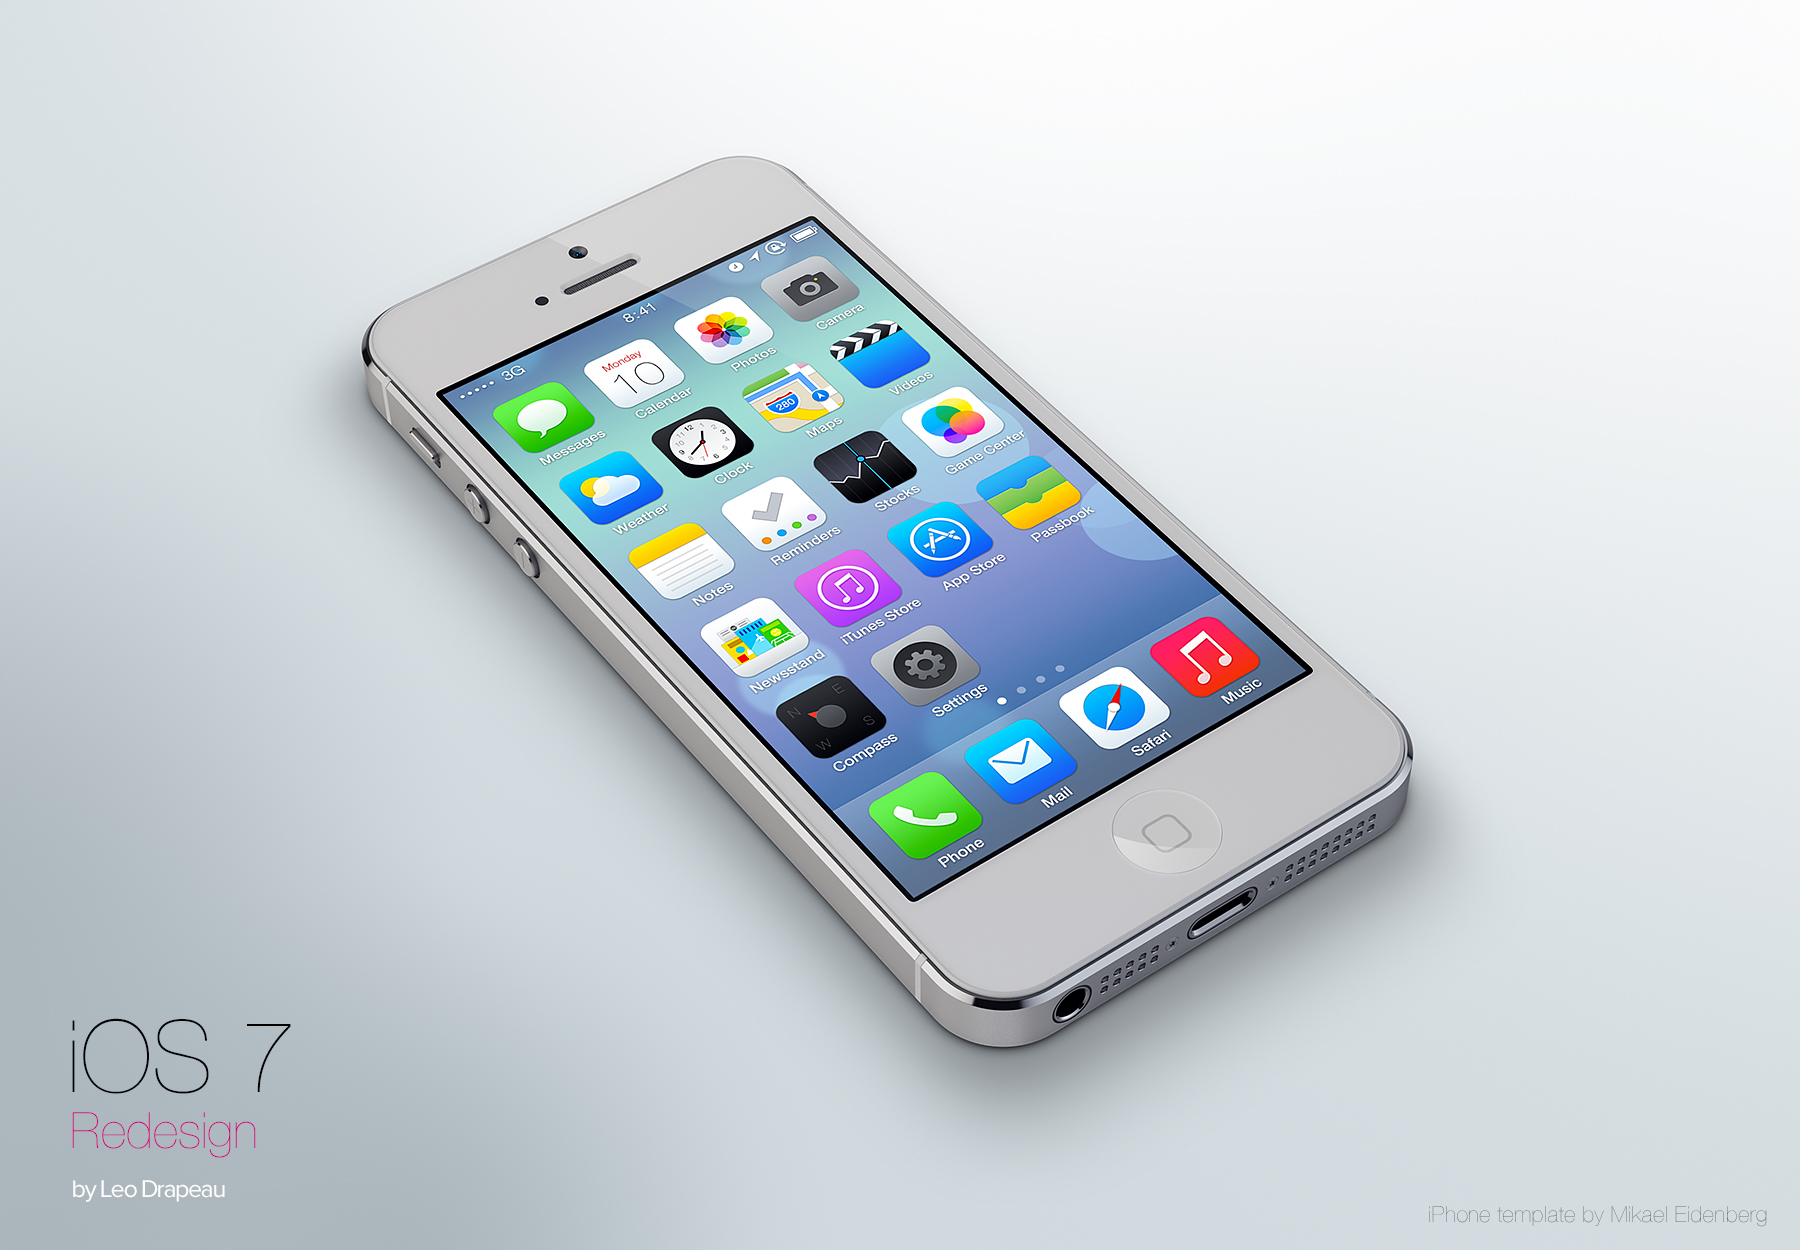 Don't Like The Look Of iOS 7? Consider These Alternative Designs